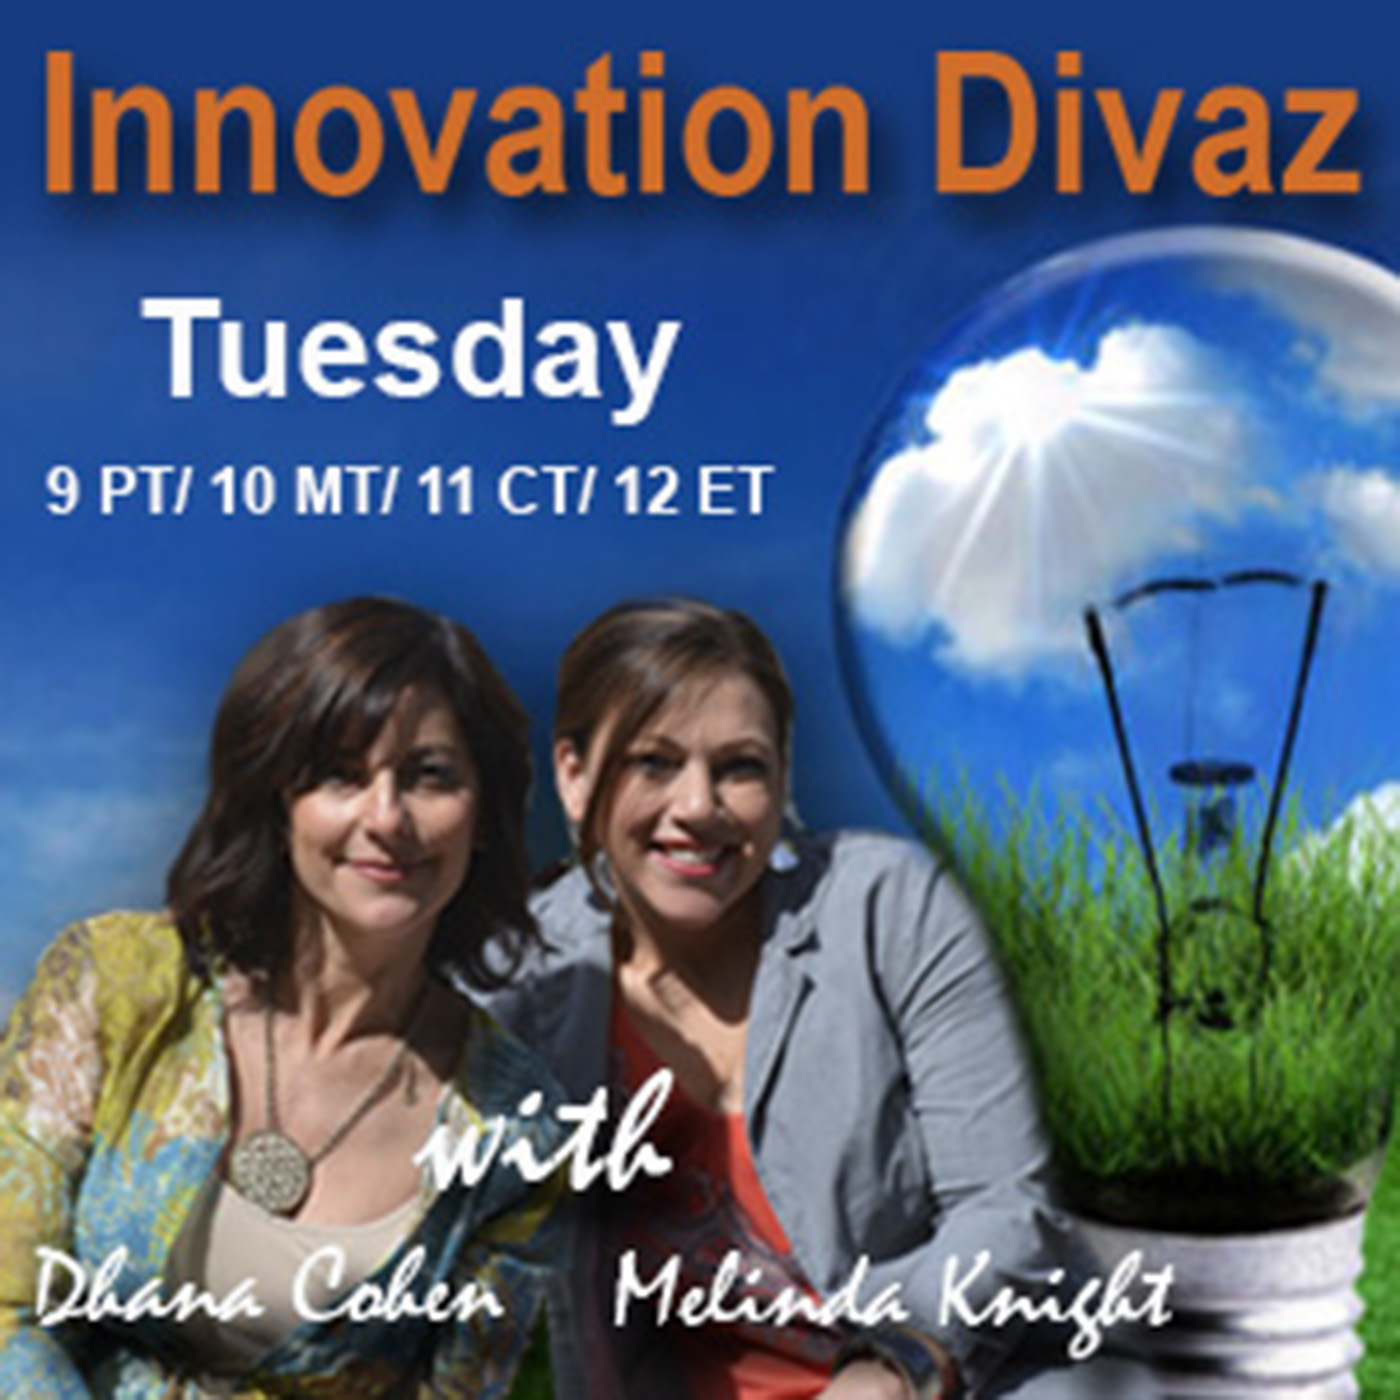 Innovation Divaz